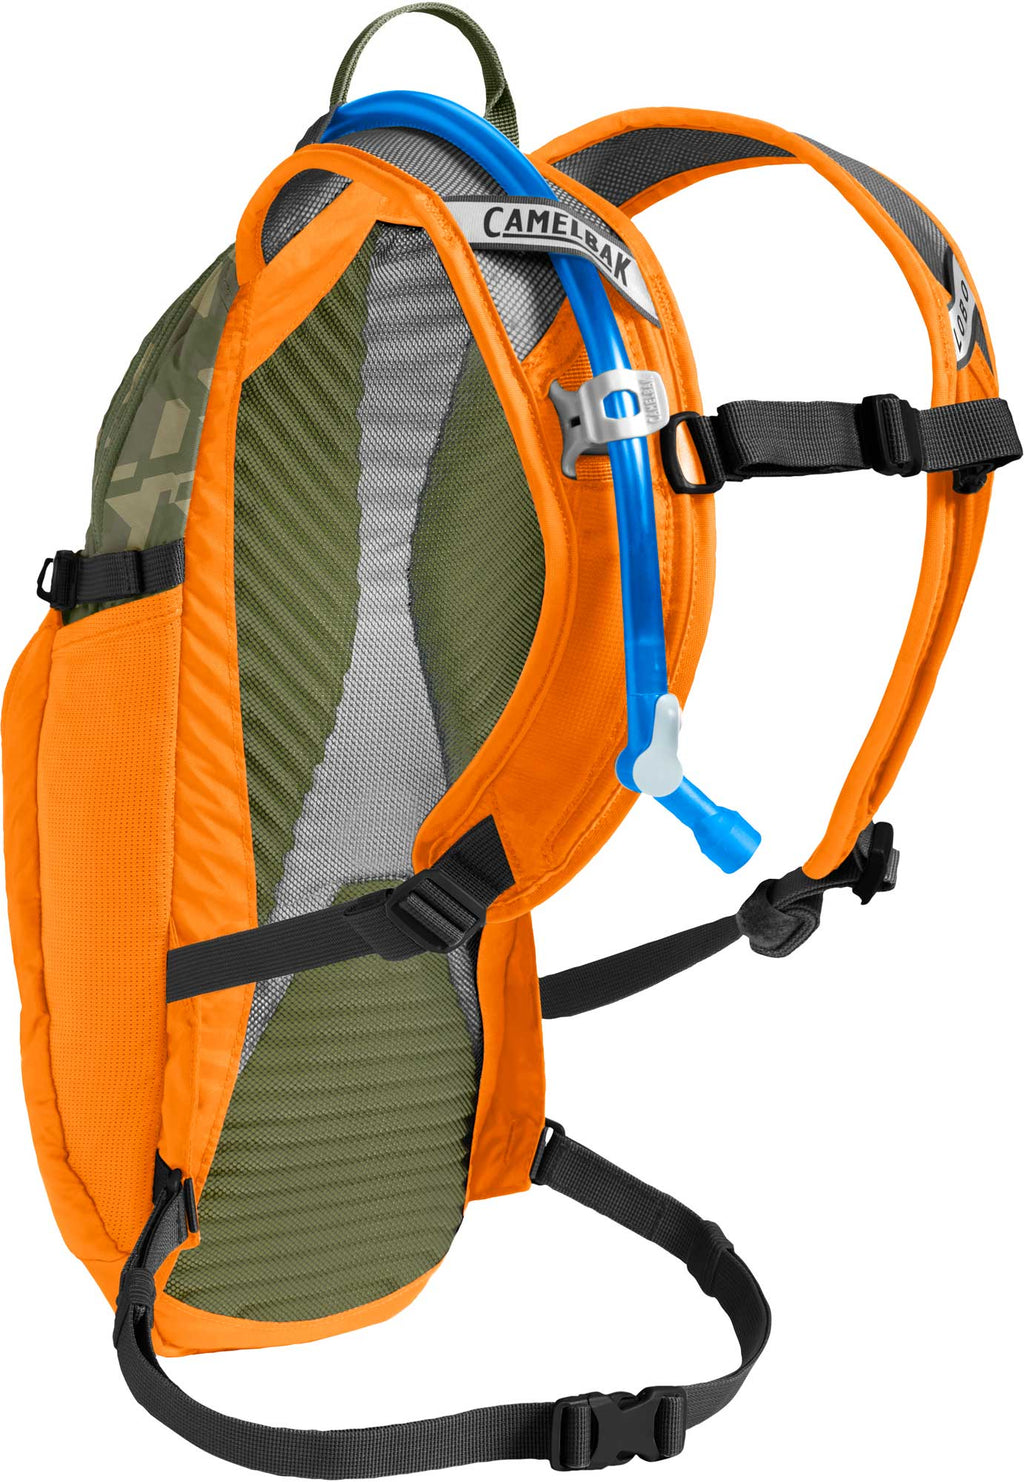 CamelBak LOBO 100oz Cycling Hydration Pack Russet Orange/Camelflage